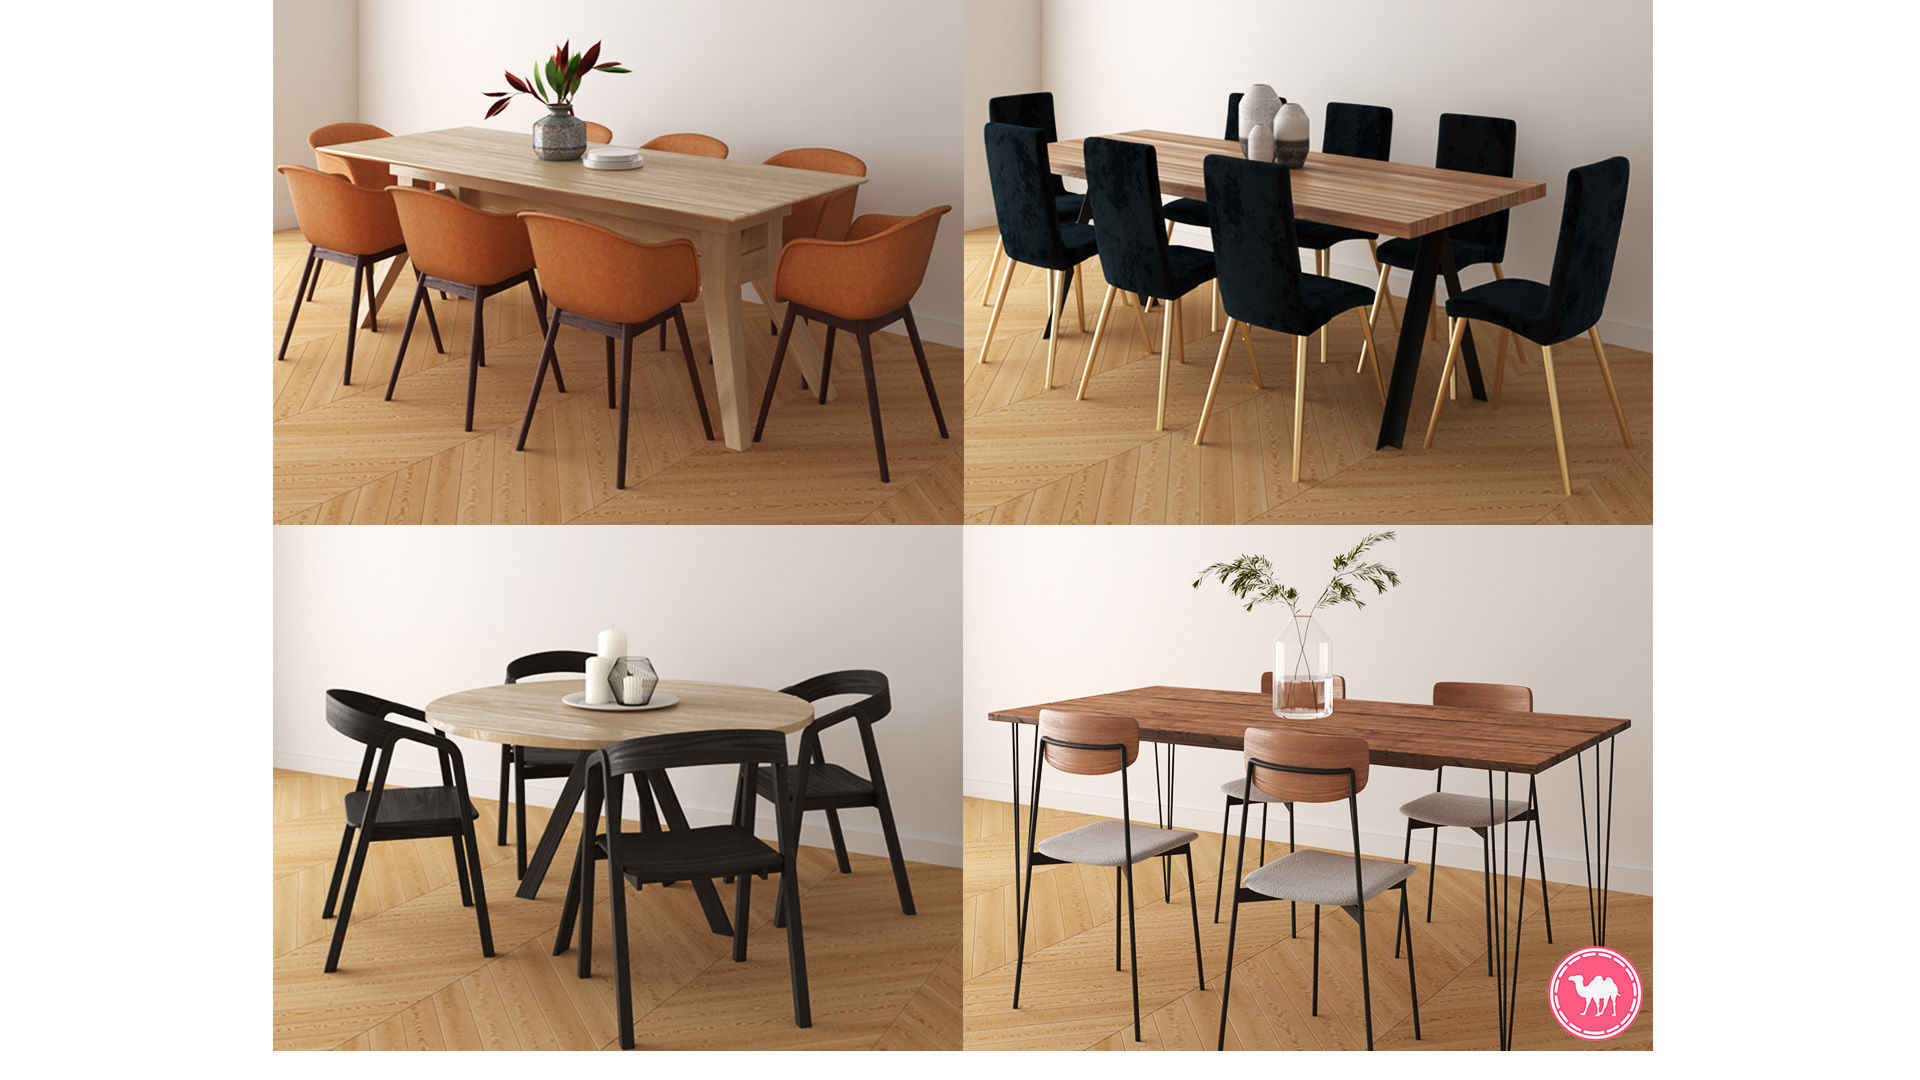 Dining Tables Pack A-D - HQ Low Poly